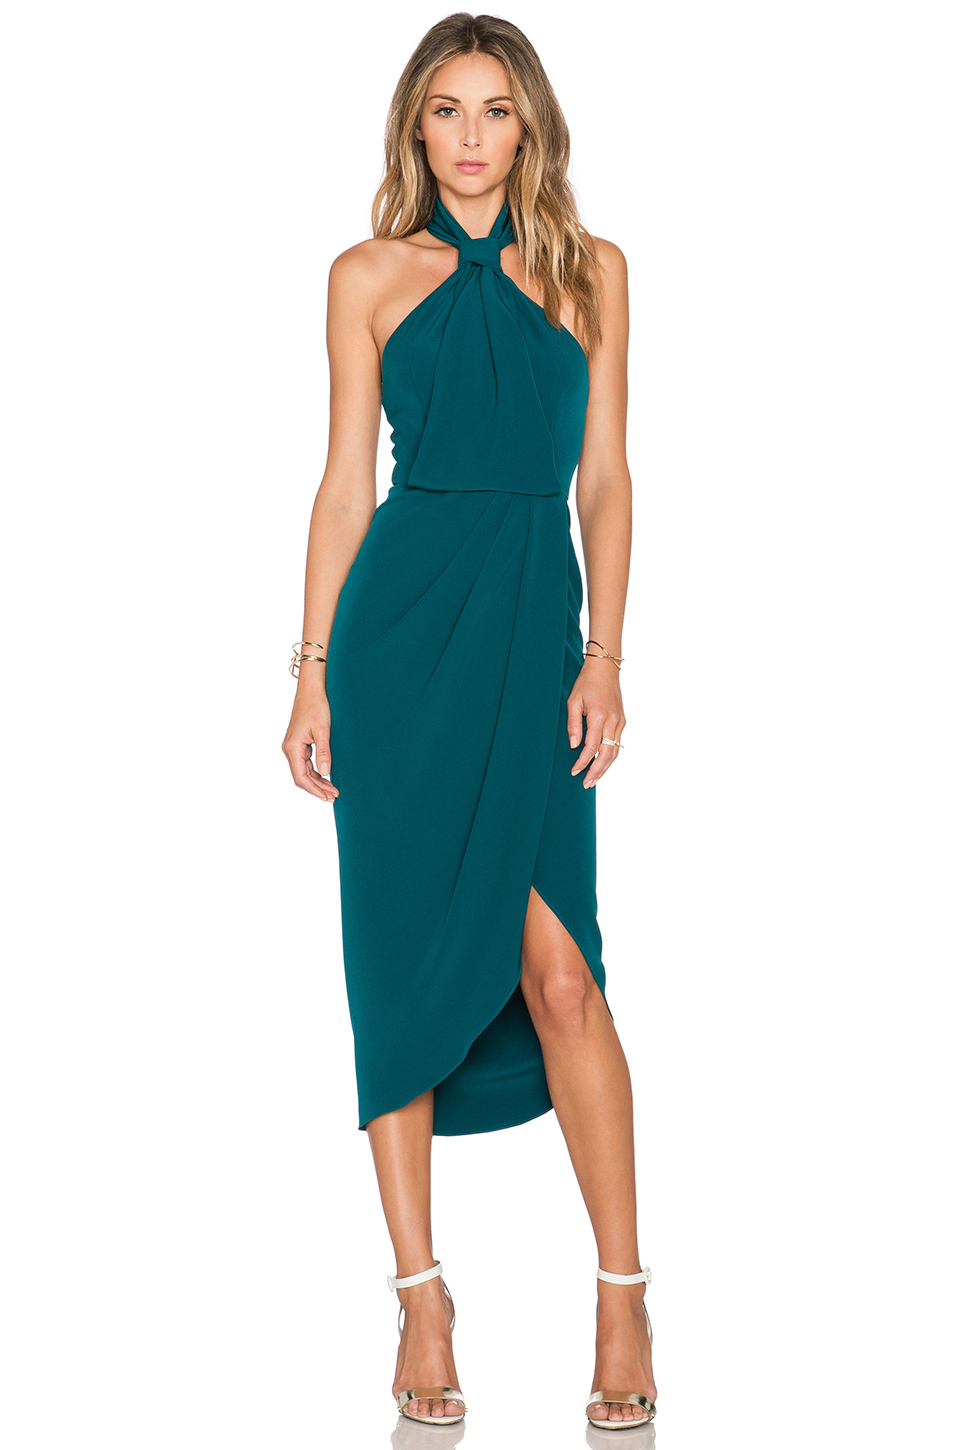 Shona Joy The Pass Knot Draped Dress In Blue Lyst